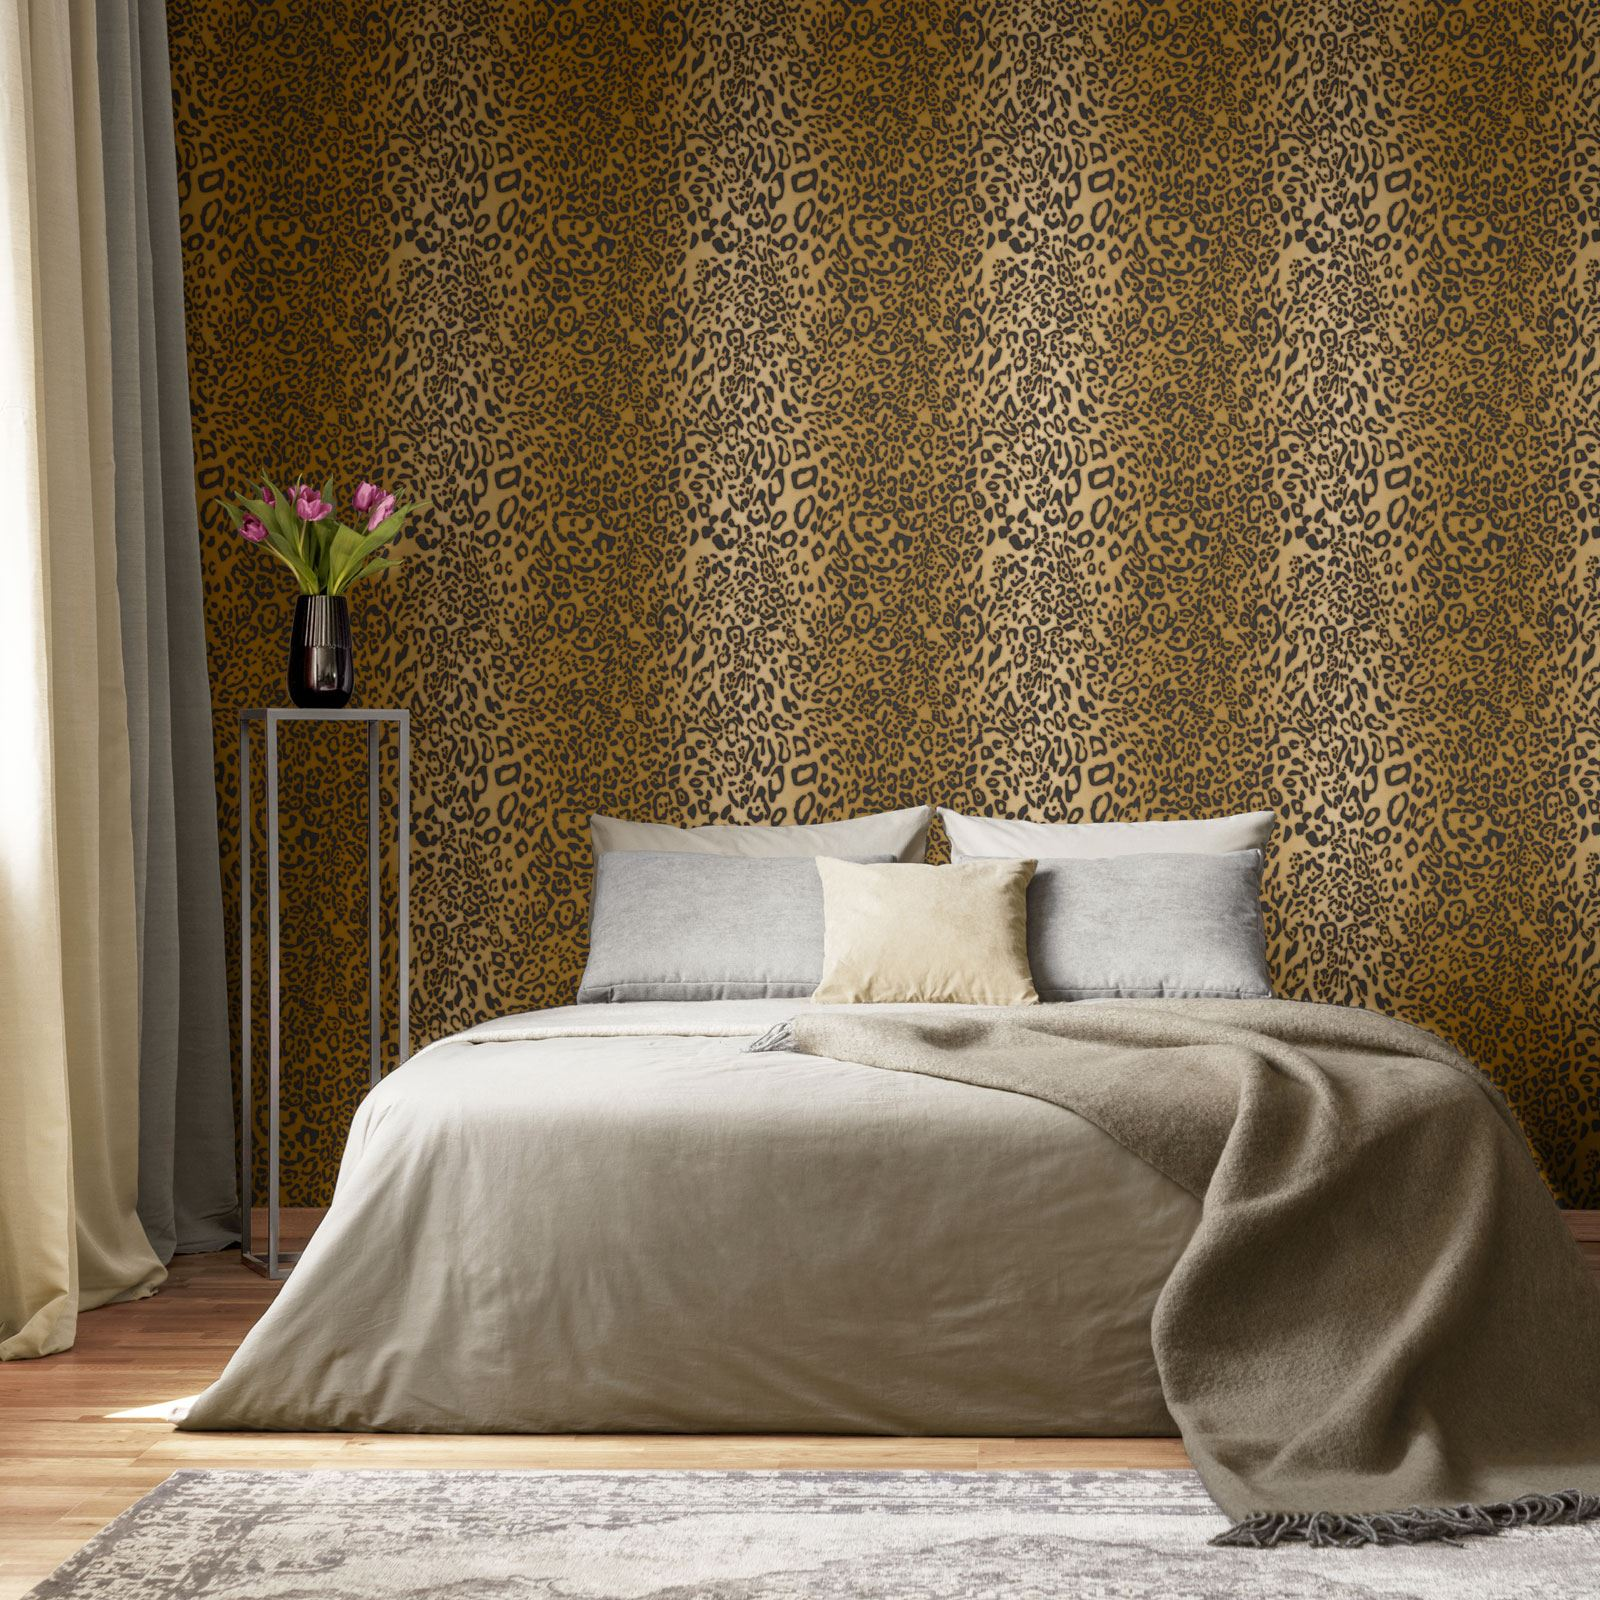 Animal Print Wallpaper Wall Decor Tiger Leopard Zebra Snake Skin Glitter Ebay